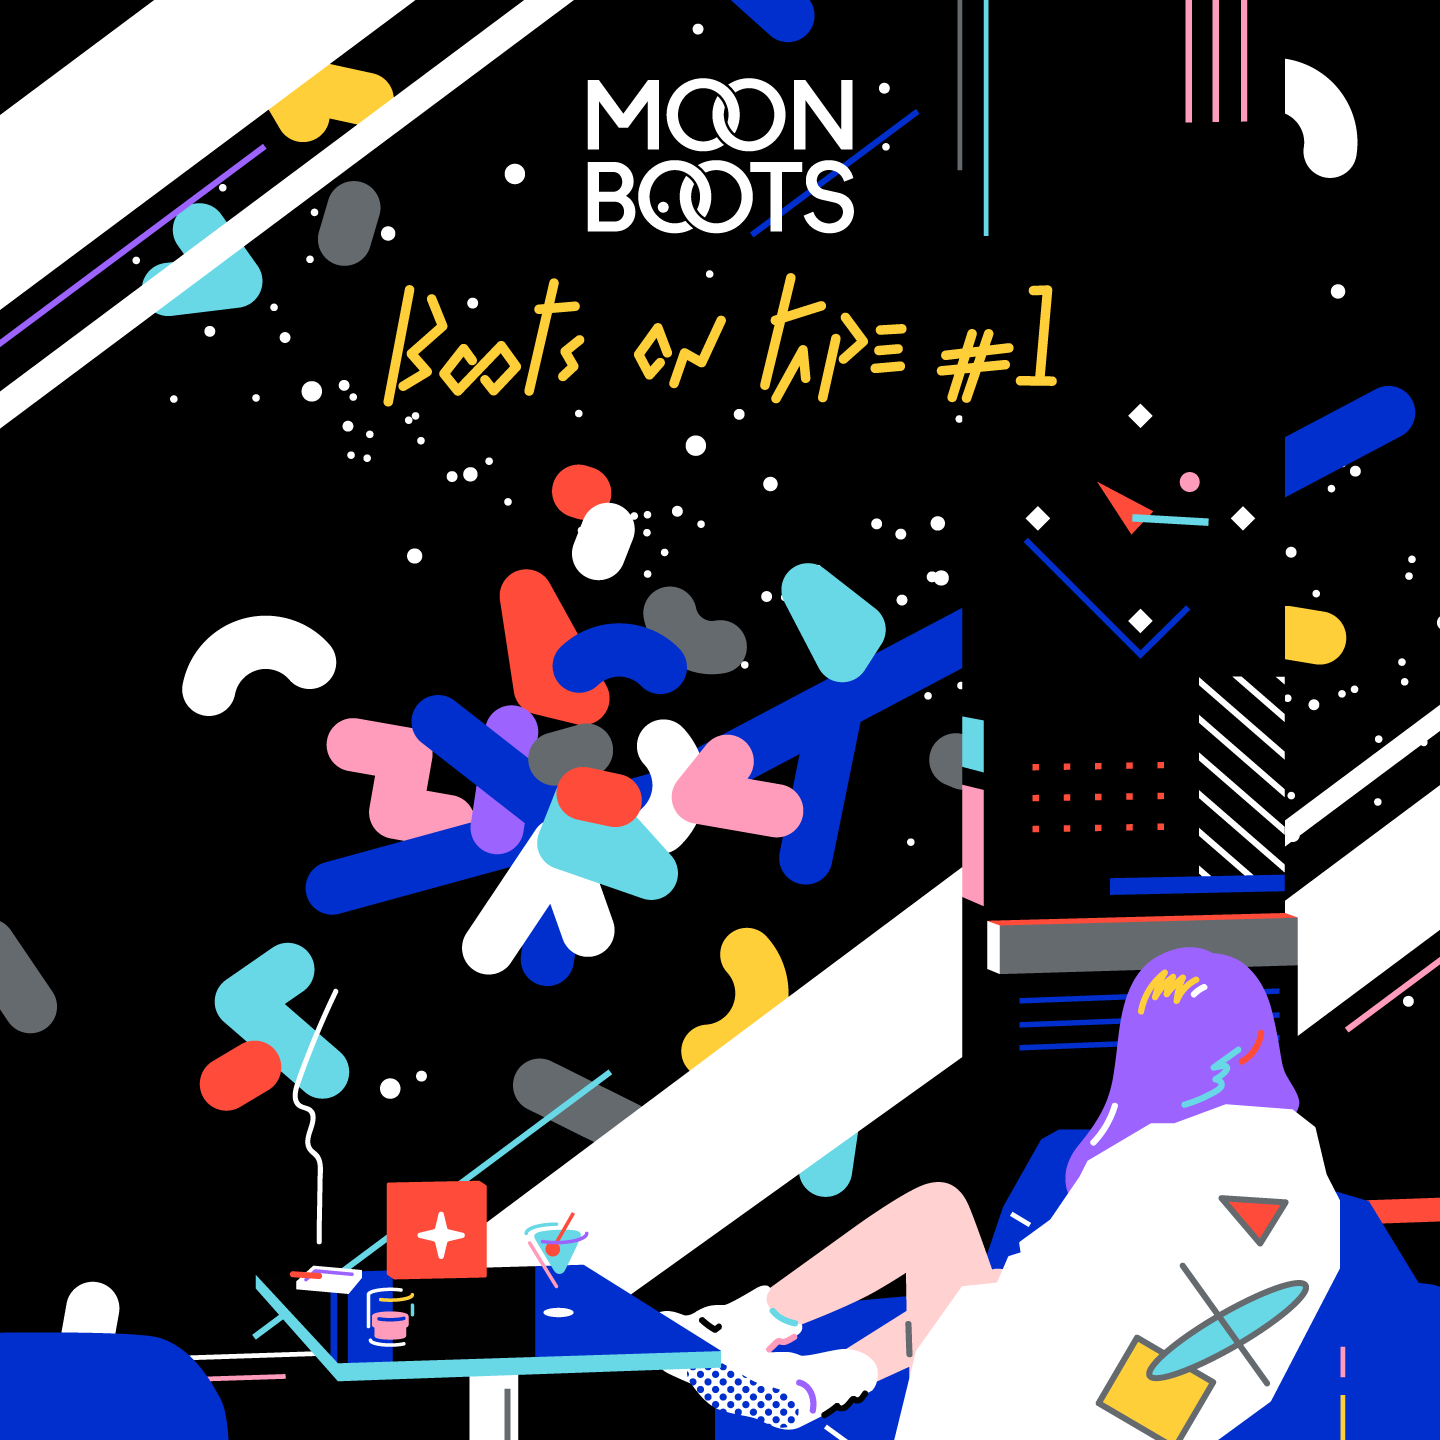 Moon Boots – Boots on Tape #1